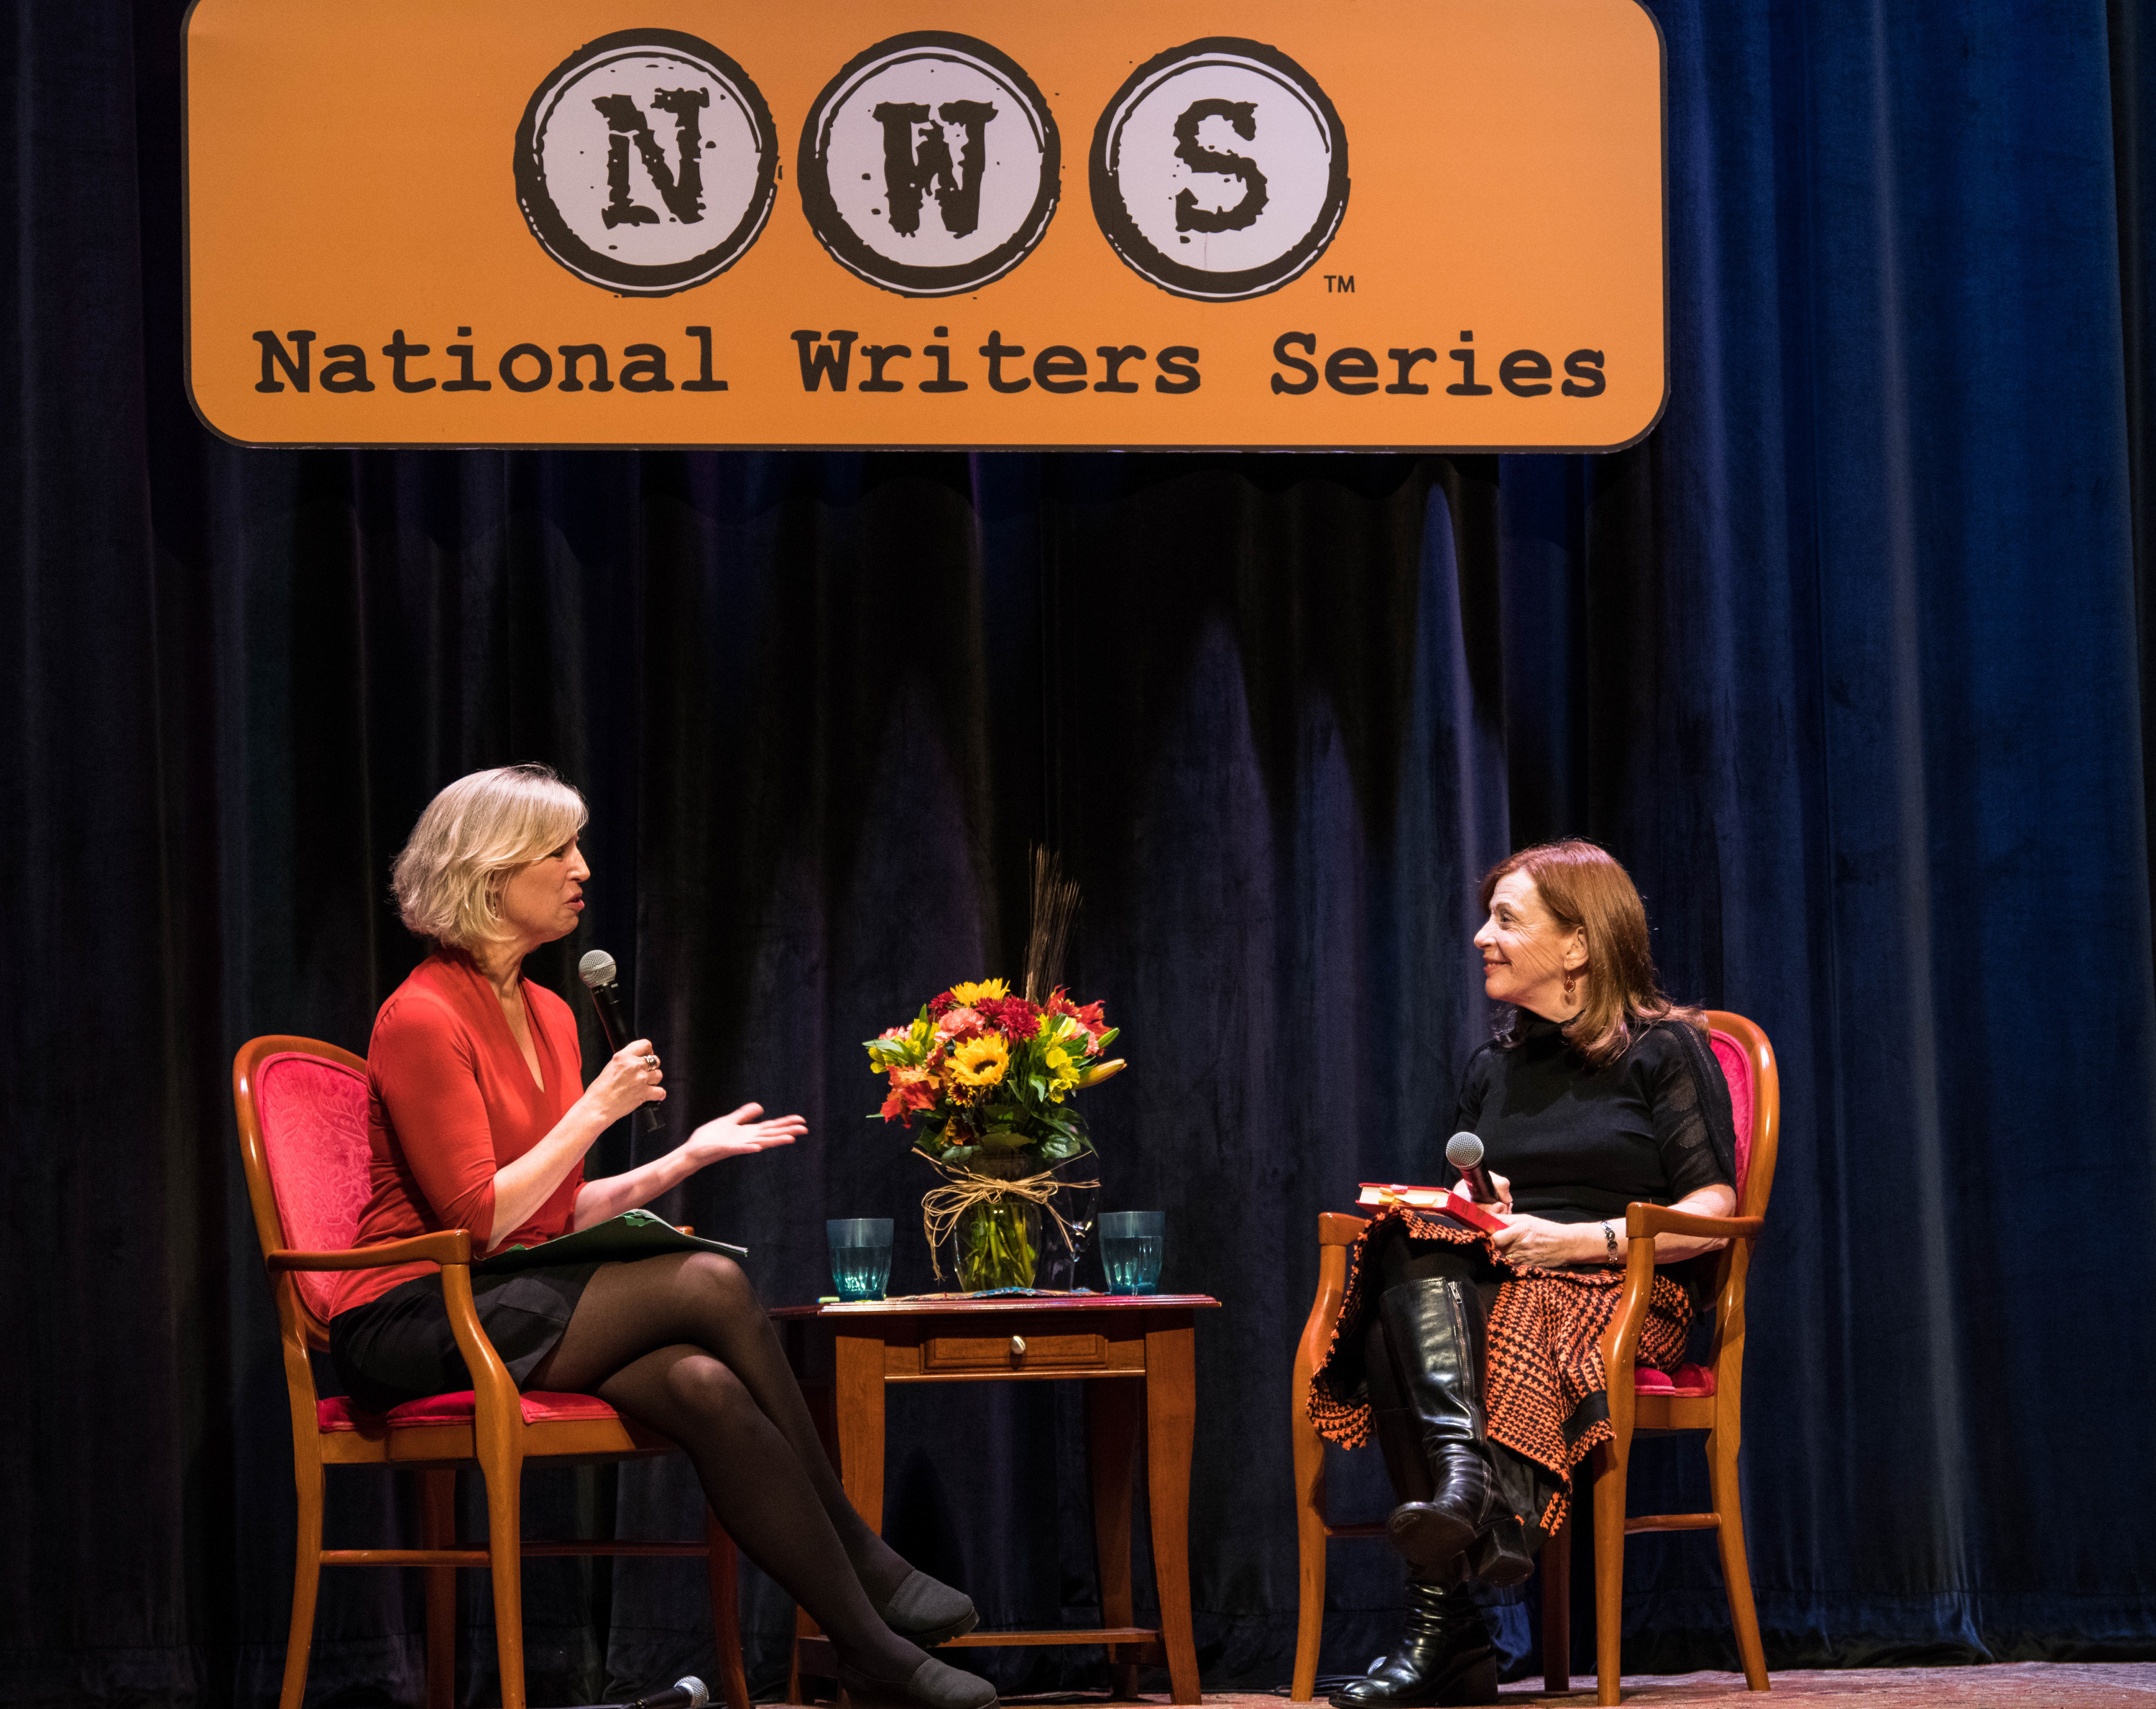 """To The Best Of Our Knowledge"" host Anne Strainchamps(left) interviews ""The Library"" author Susan Orlean live on stage at the National Writers Series in Traverse City, Michigan. <em>Tom Haxby/National Writers Series&nbsp;</em>"